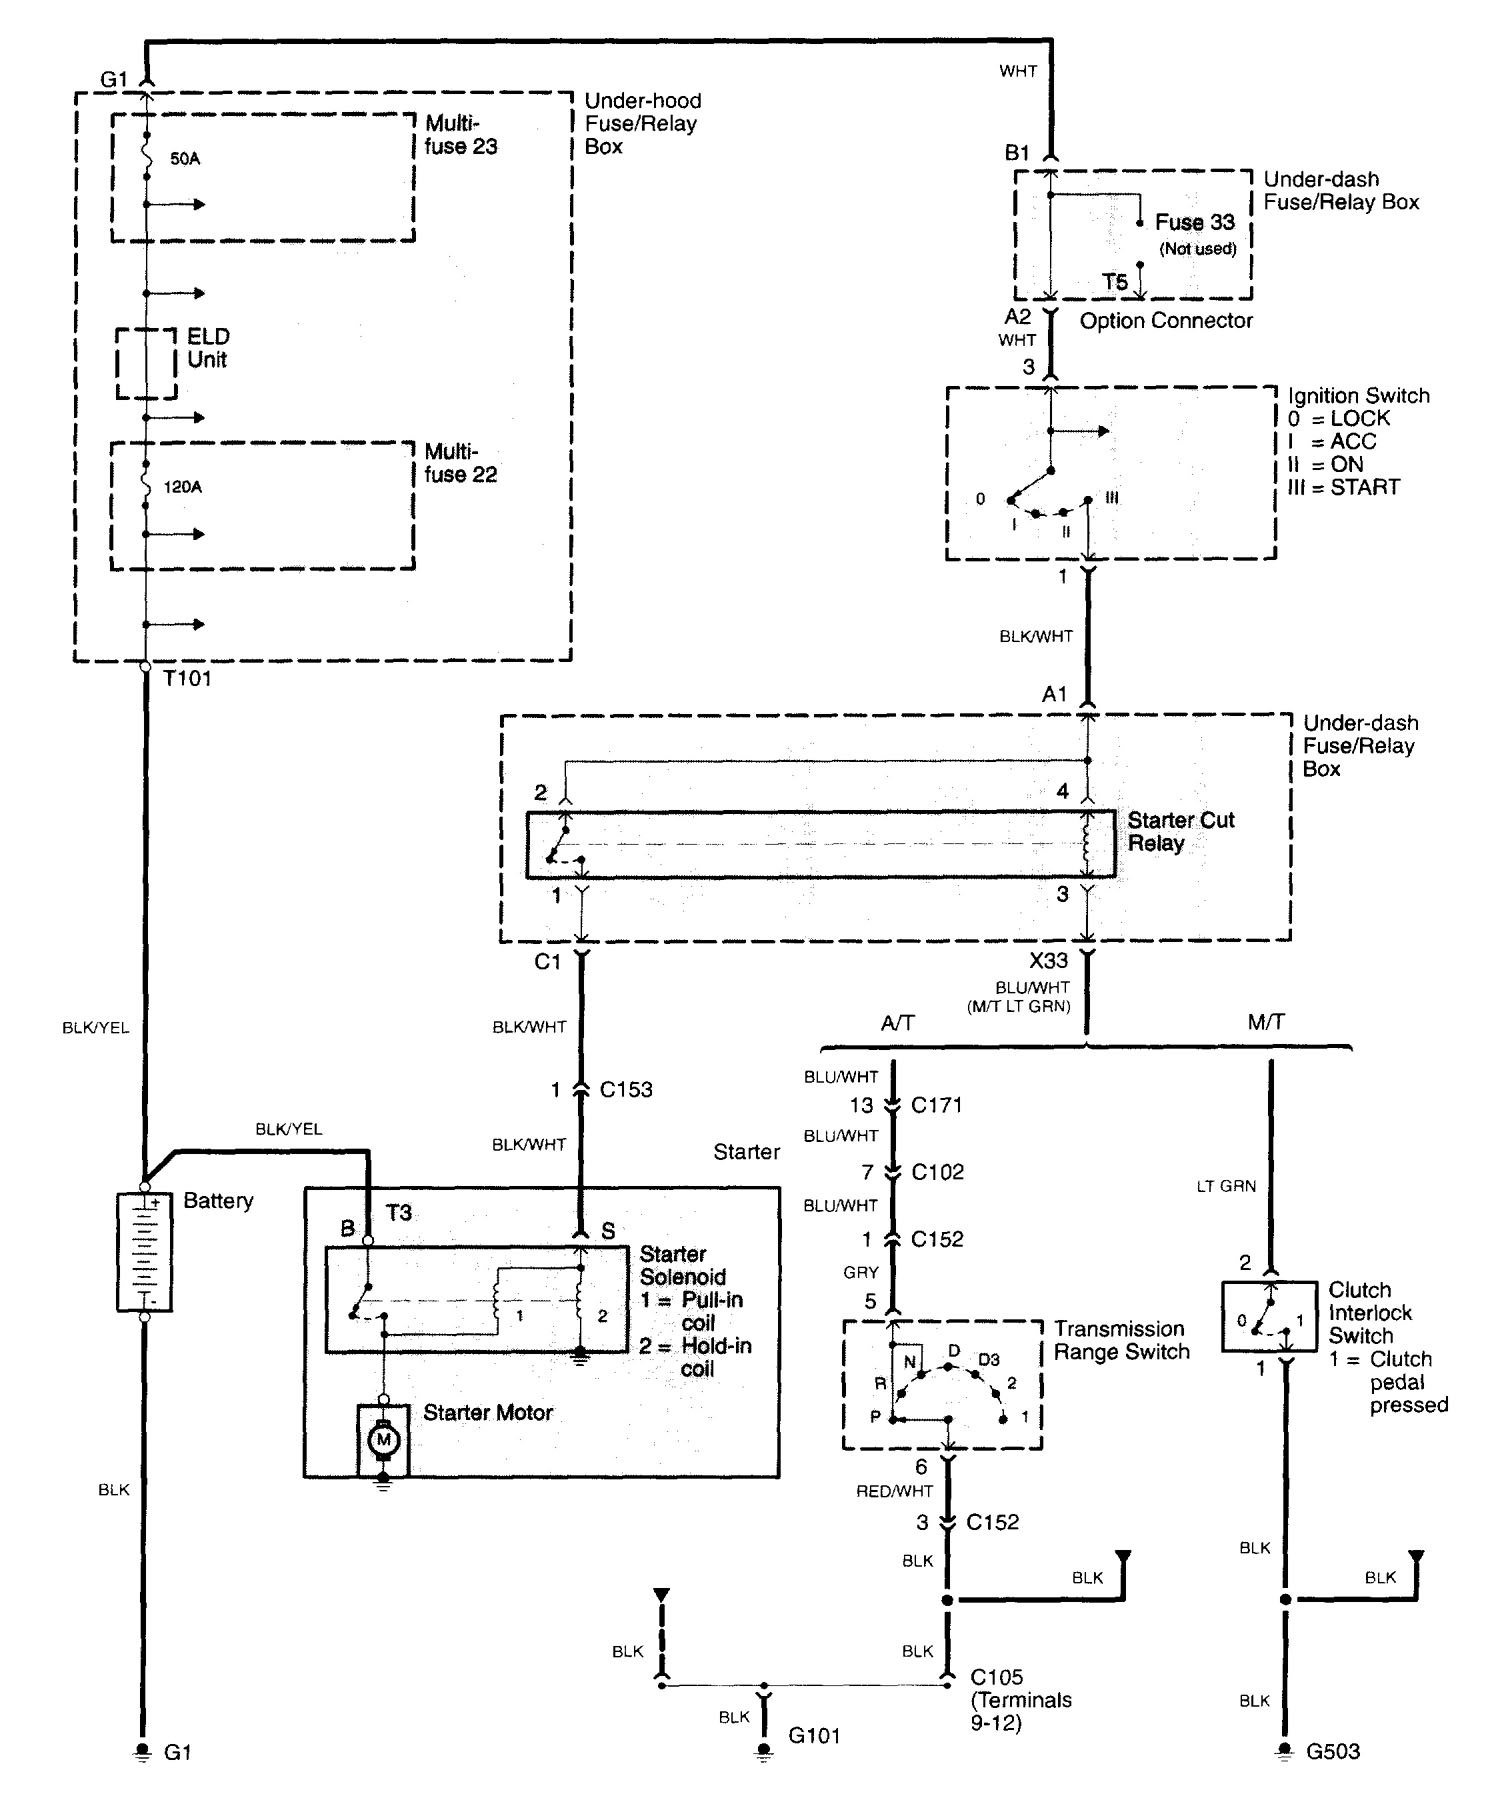 Diagram 2003 Acura Tl Wiring Diagram Full Version Hd Quality Wiring Diagram Ontodiagram2a Meninblack3 It